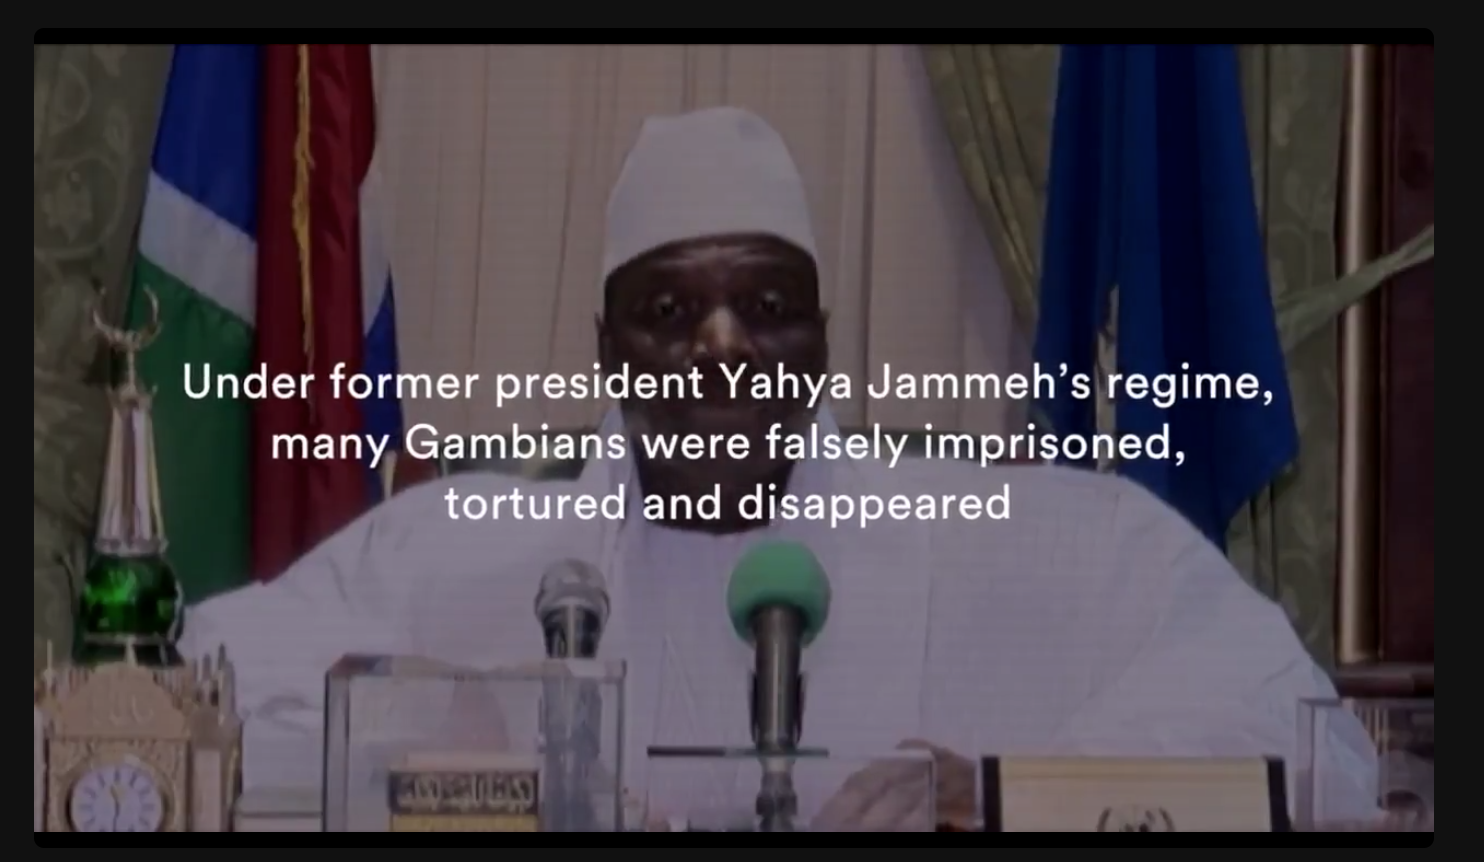 Screen-grab from documentary: Dec 2016, Yahya Jammeh goes live on air to rescind the recent elections, whereby the majority of the country voted him out